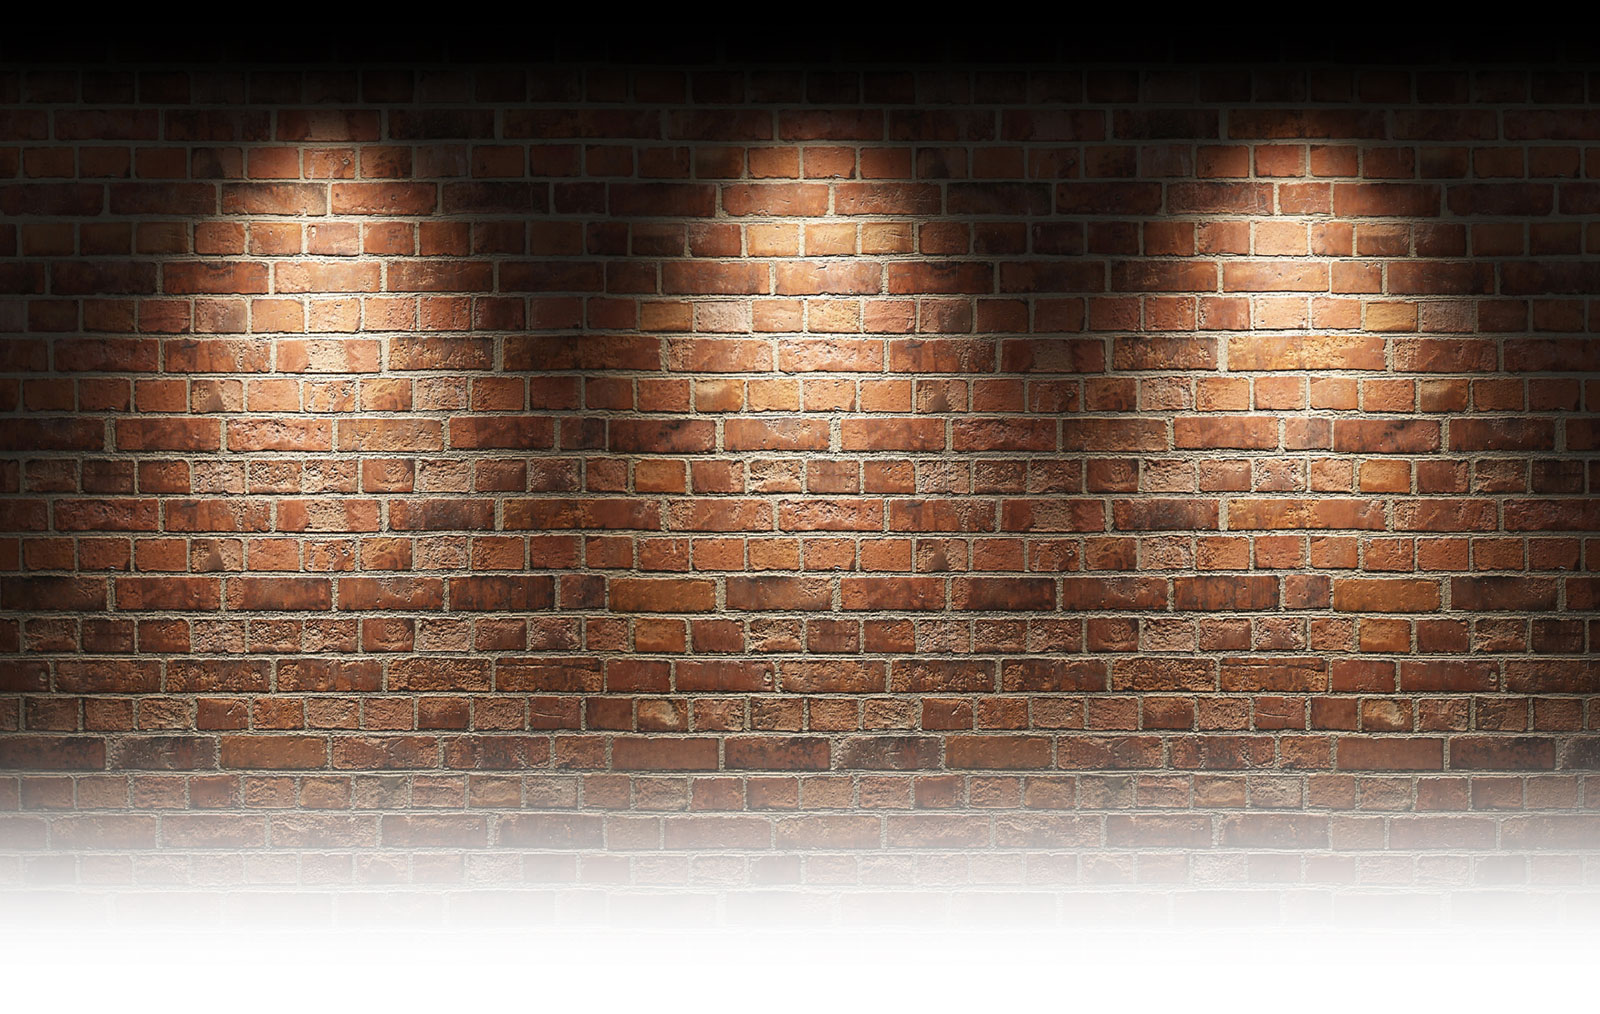 Brick Wall Lights 10 Essential Components Outdoor And Indoor Wiring Diagram Photo 1